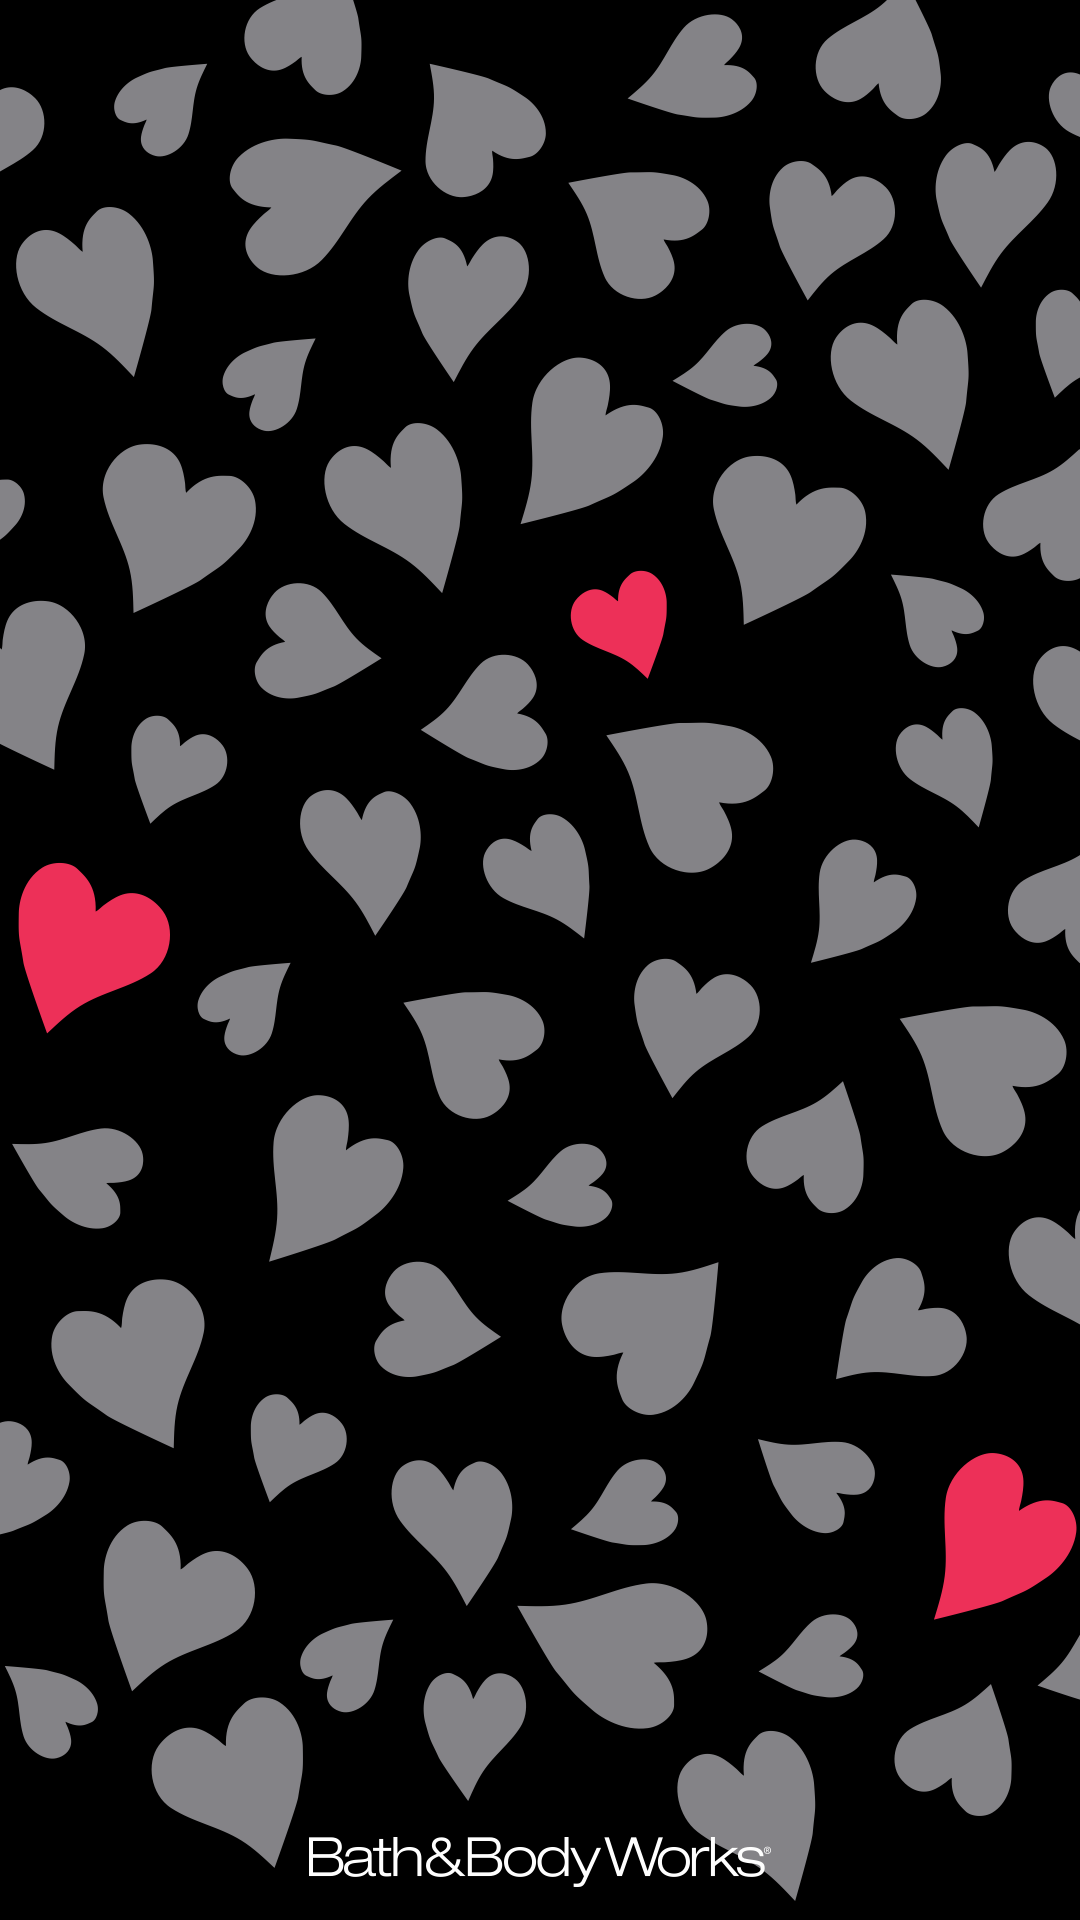 Black Heart Iphone Wallpaper Heart Iphone Wallpaper Heart